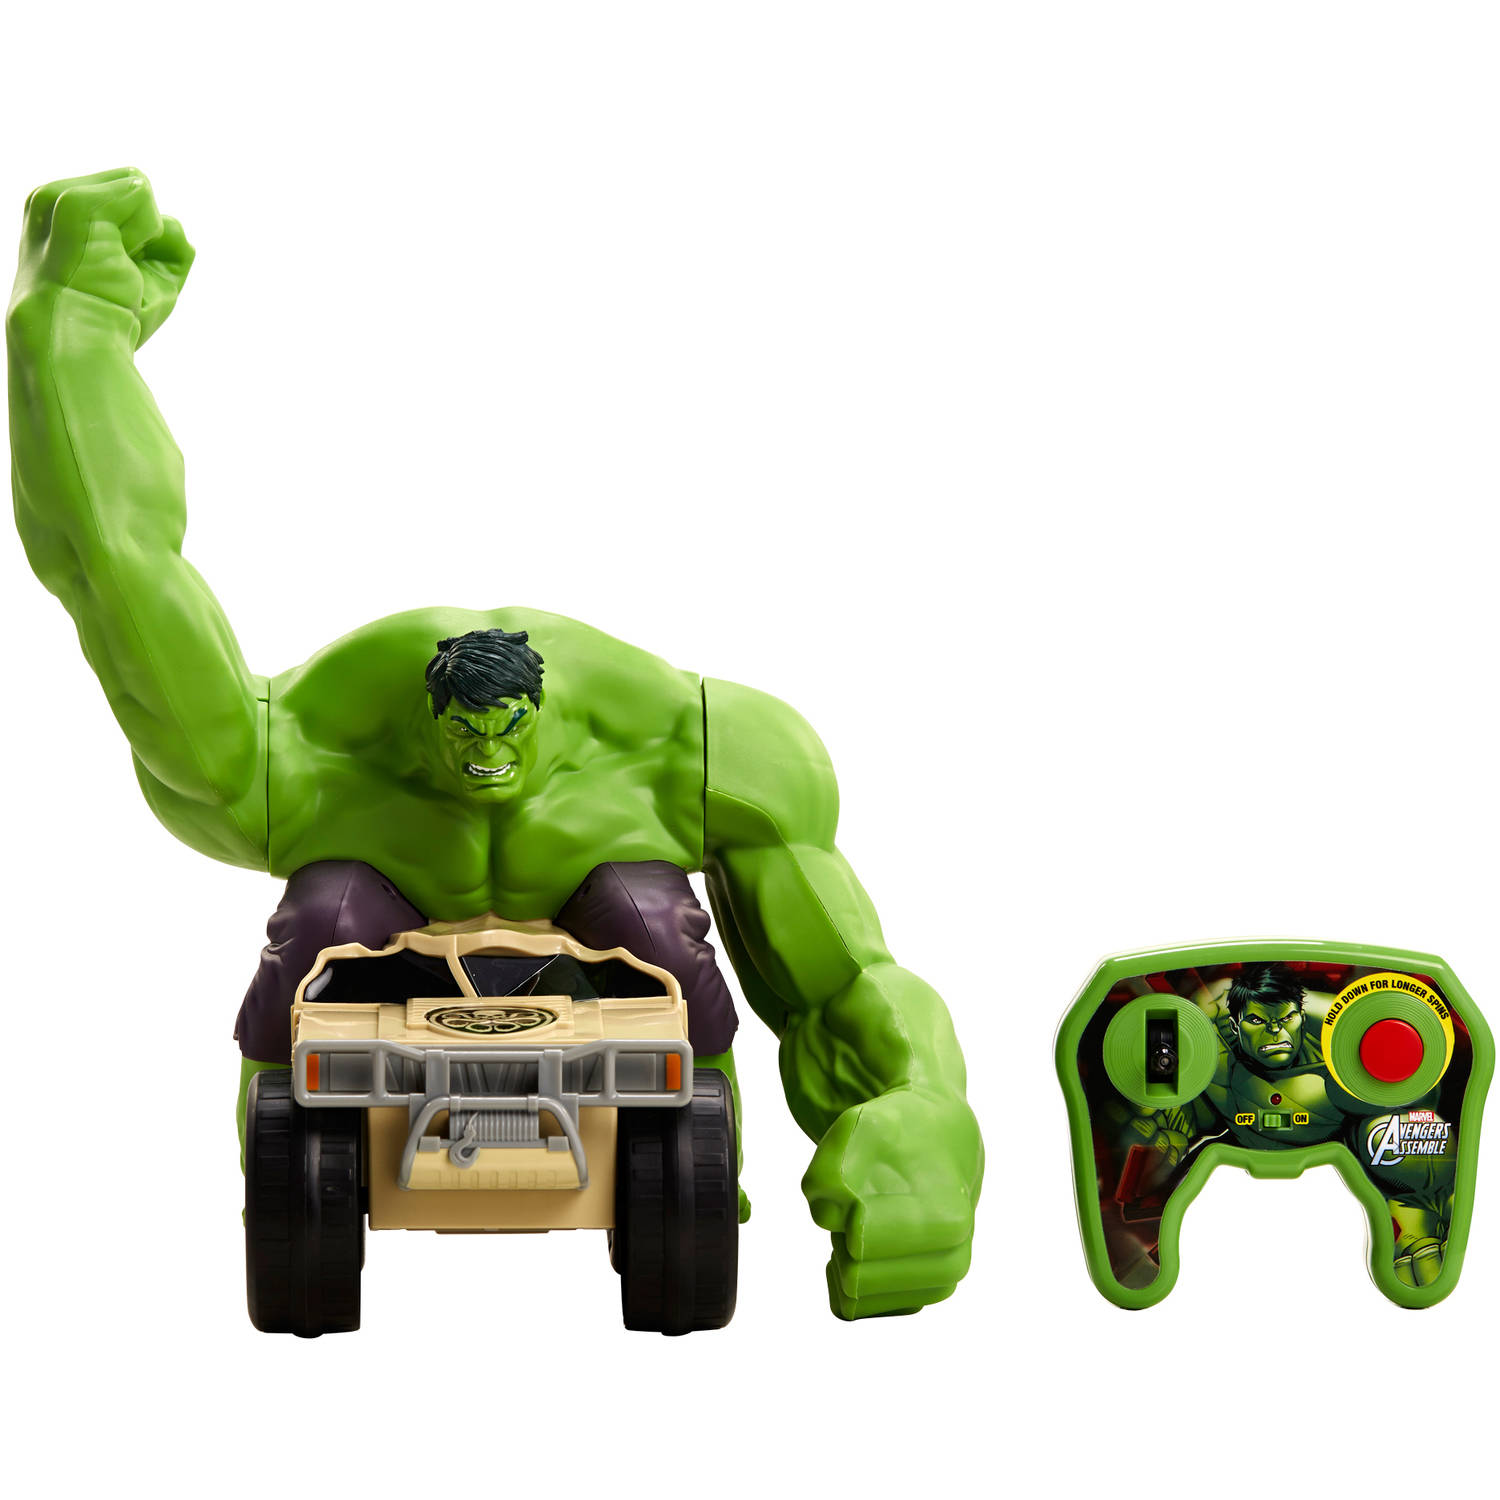 Marvel RC Hulk Smash